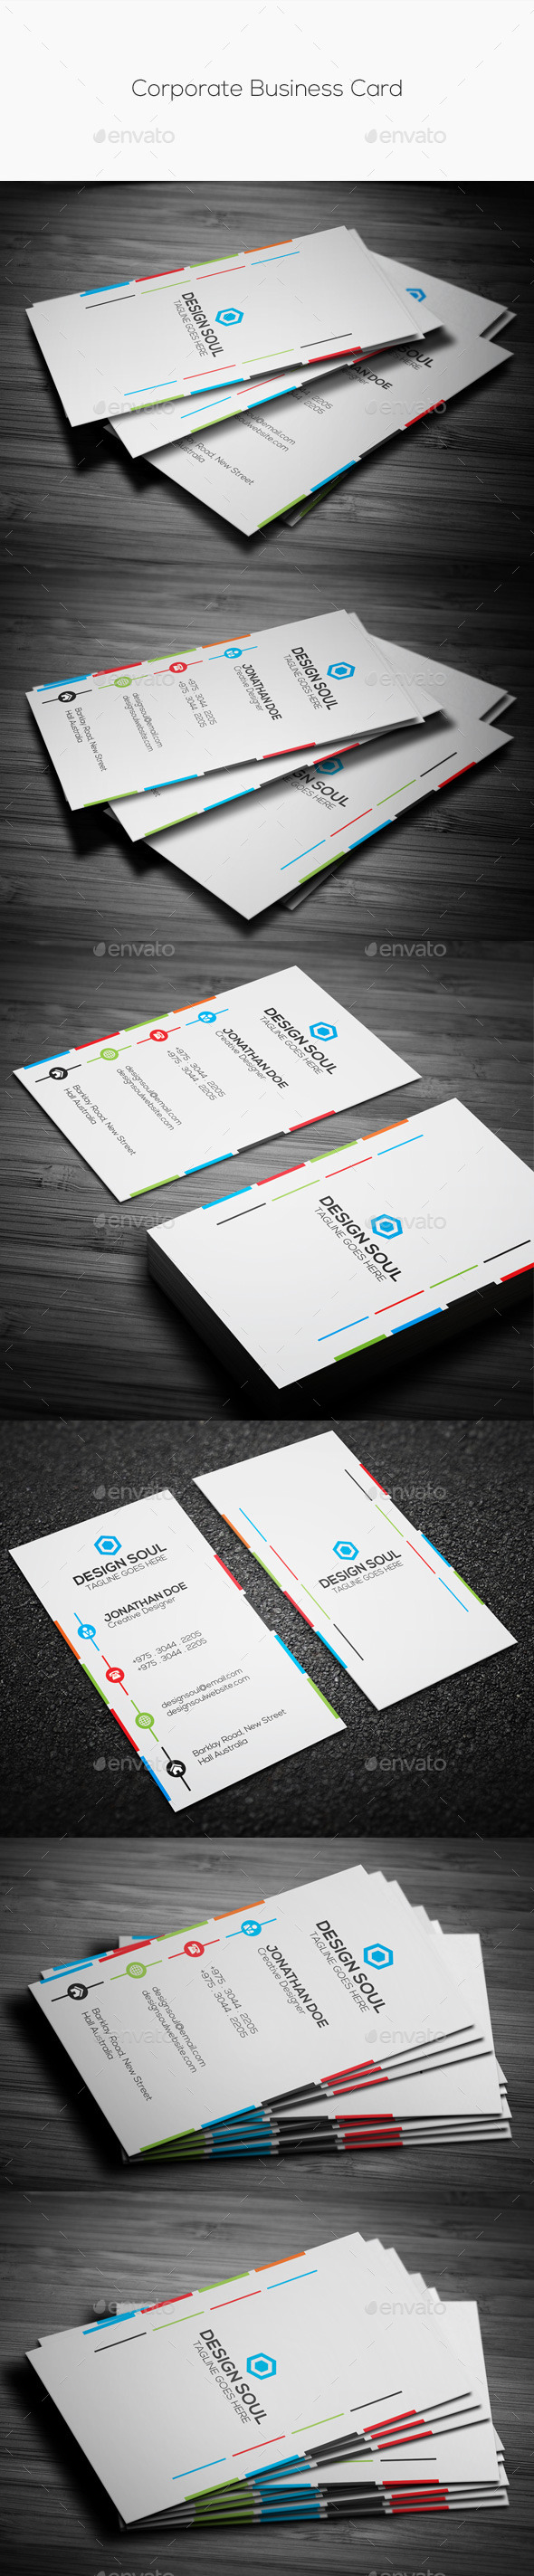 GraphicRiver Corporate Business Card 10444978